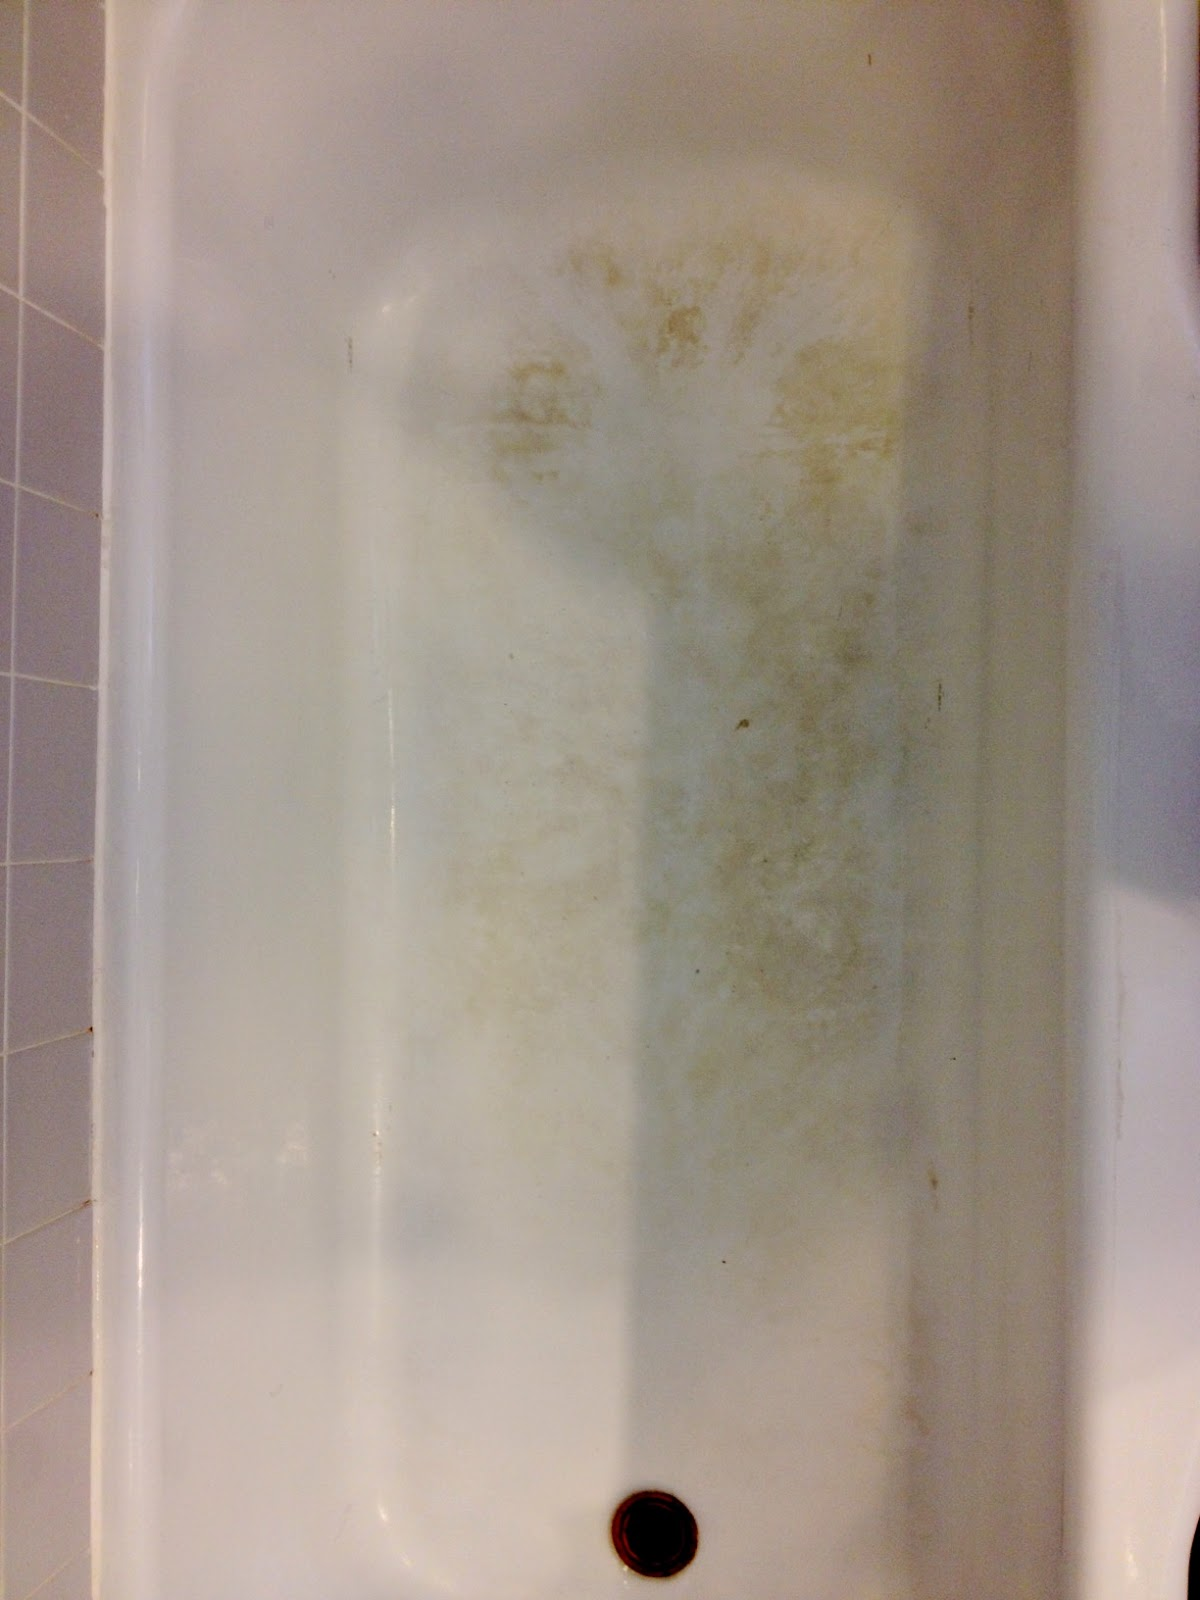 Over on Dover: Refinishing the Bathtub